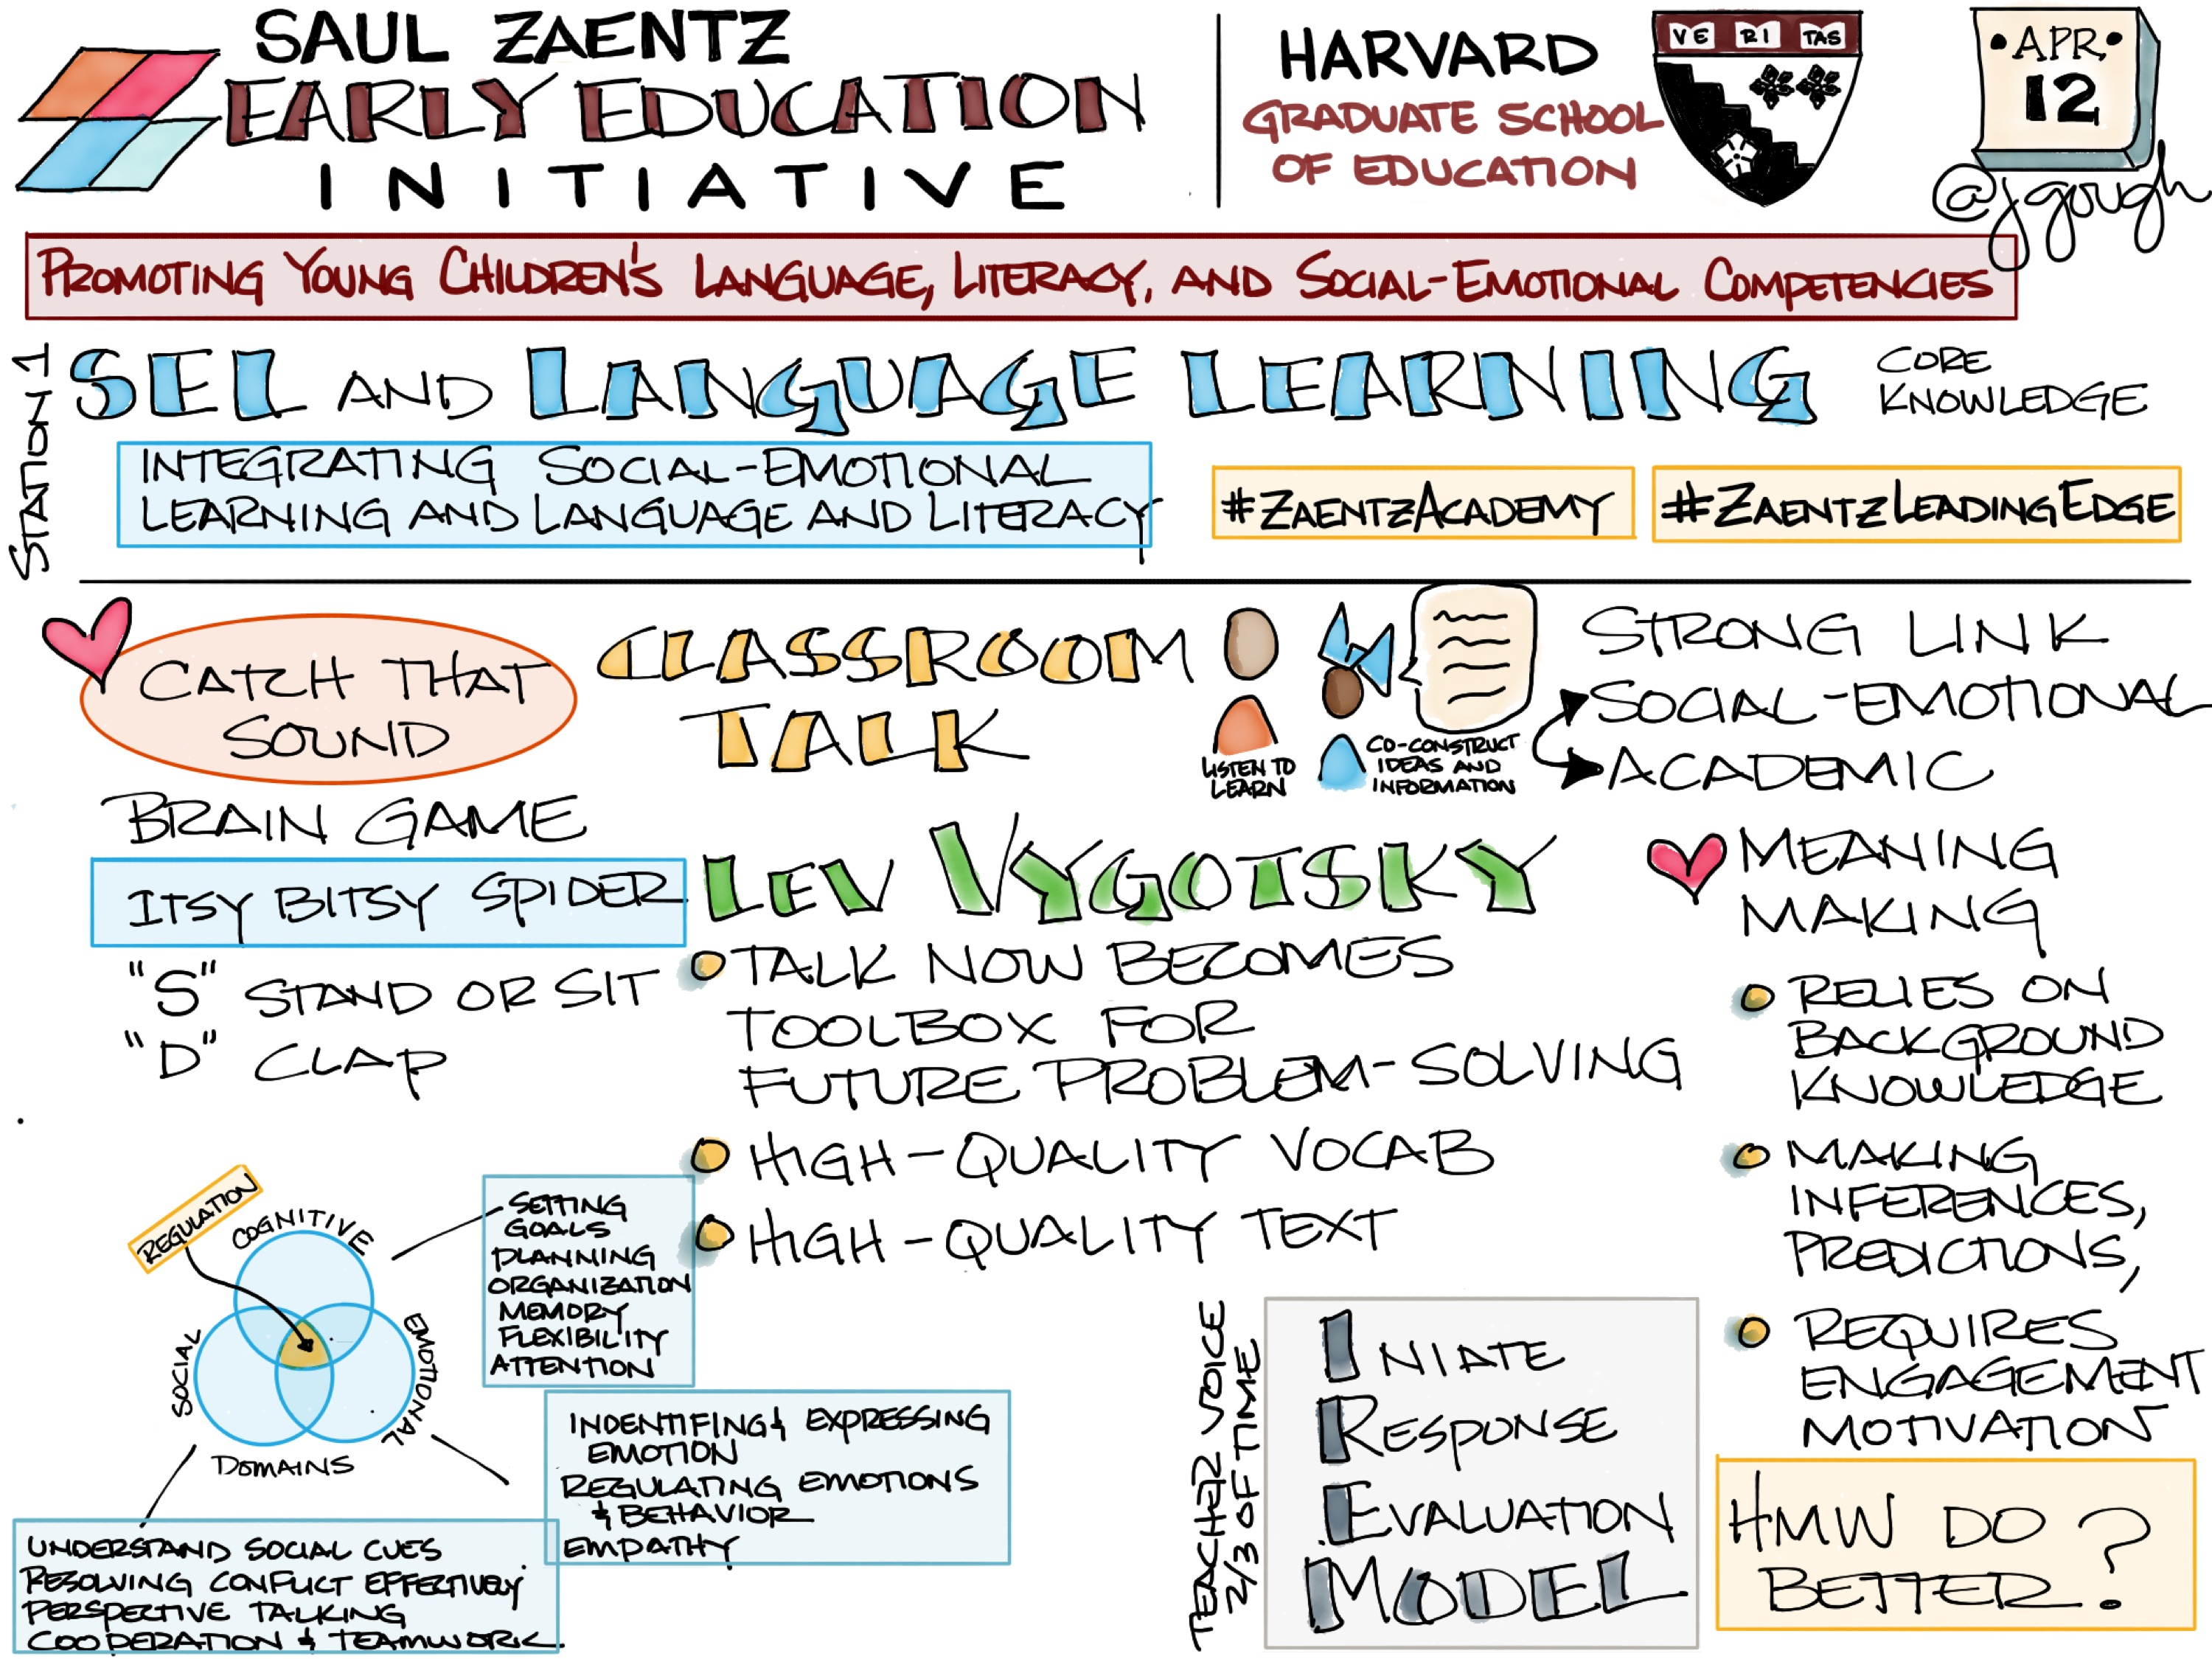 @ZaentzHarvardEd #ZaentzAcademy Station 1 session: Integrating Social-Emotional Learning and Language and Literacy Core Knowledge #ZaentzLeadingEdge